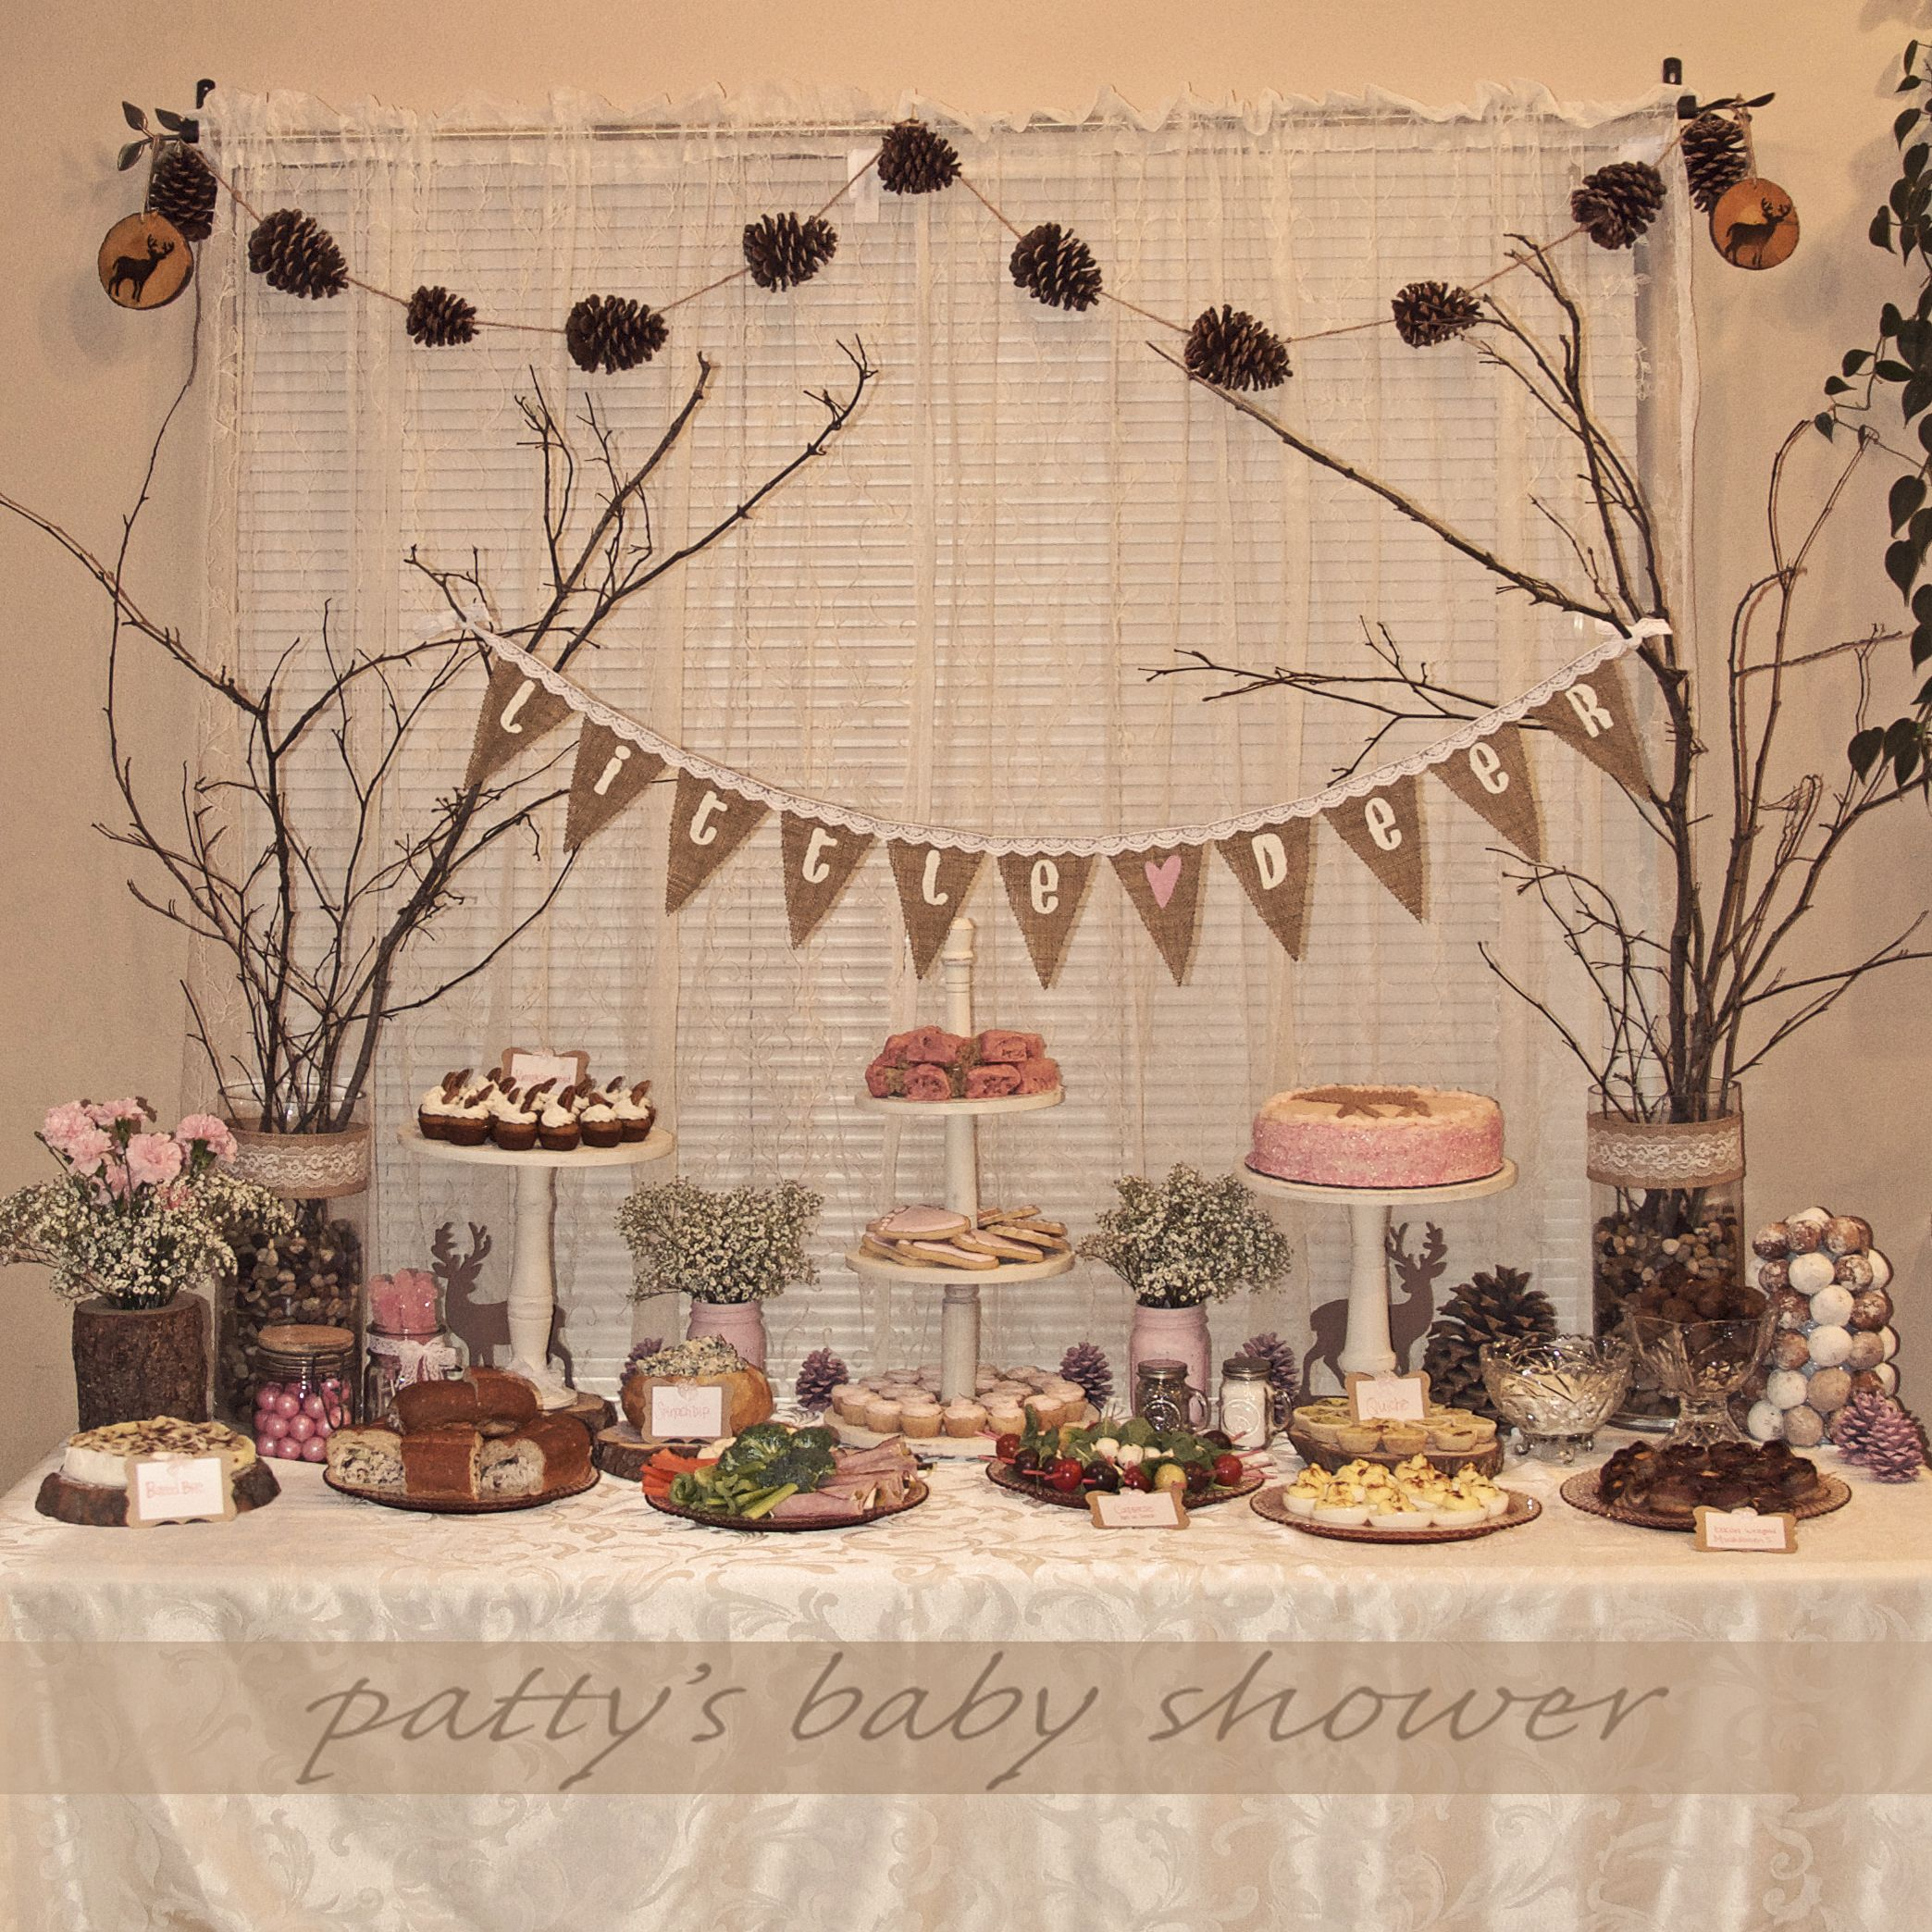 baby showers rustic shower event ideas party ideas baby shower shower